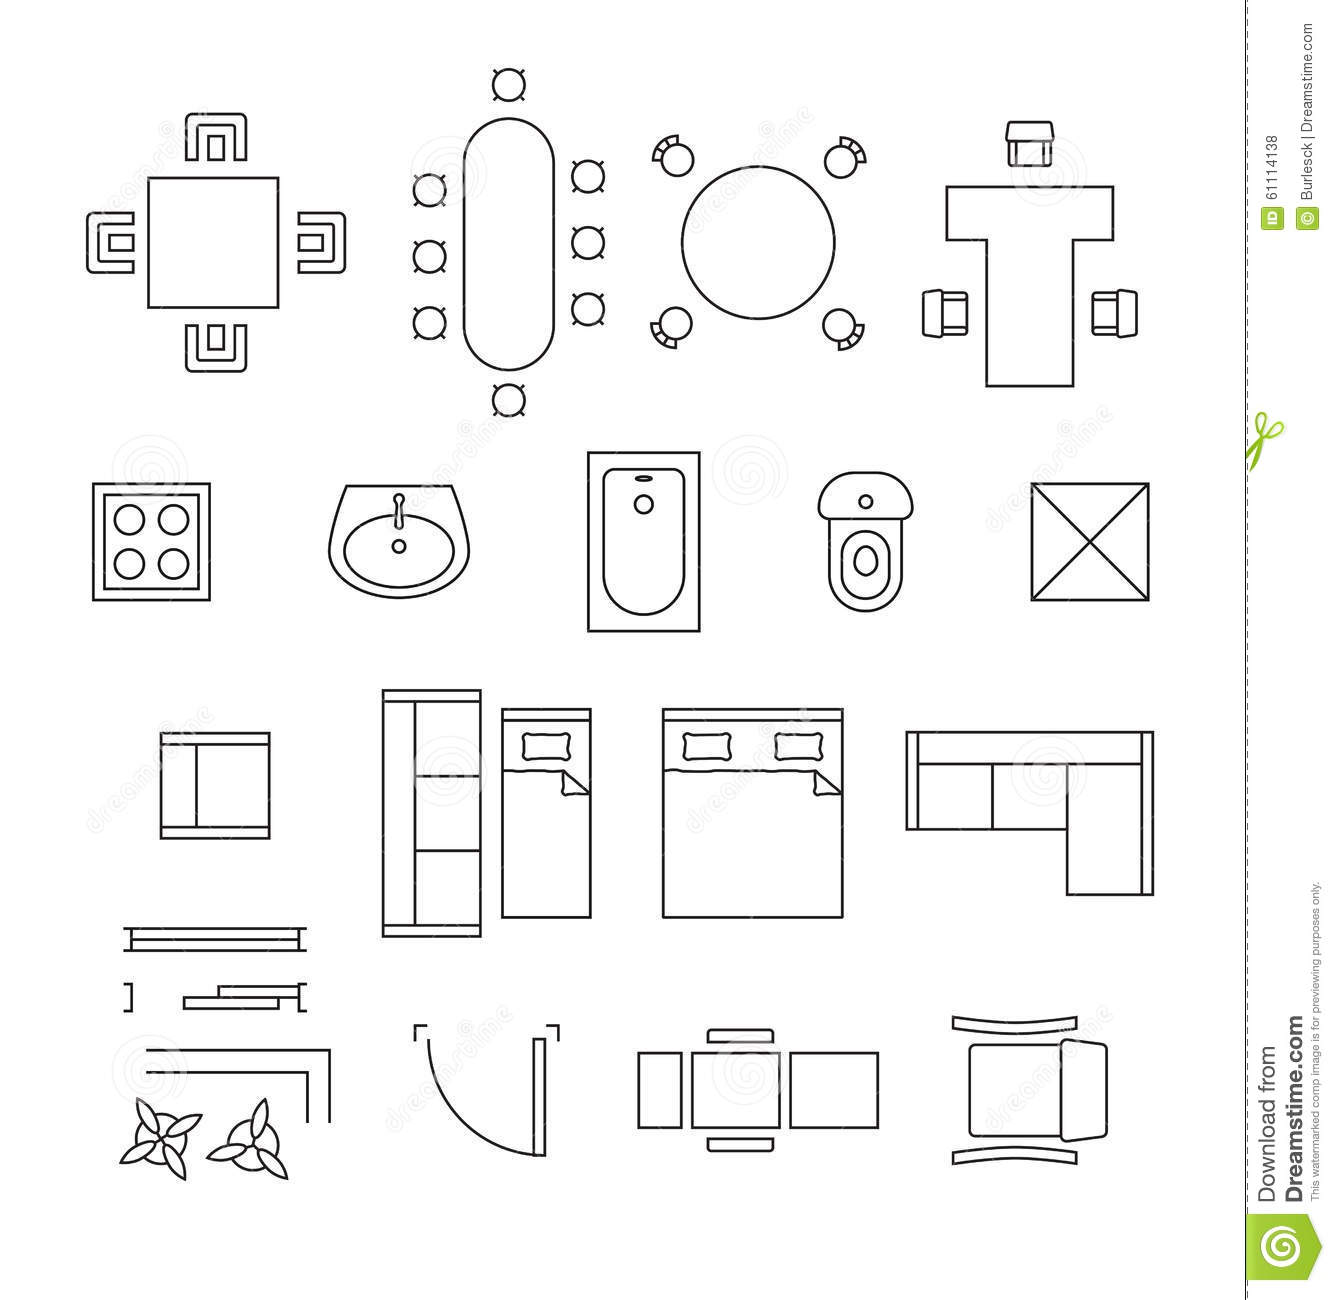 Furniture Linear Vector Symbols. Floor Plan Icons Stock Vector ... on home symbols, symbols of death, traffic sign, secular icon, real estate symbols, alchemical symbol, letterlike symbols, architectural symbols, house plan architecture, astrological symbols, house plan terminology, house plan terms, house plan logos, kenneth burke, house plan notes, house plan specification sheet, unicode symbols, house plan software, adinkra symbols, abstract and concrete, drawing symbols, house plan diagrams, house plan symbals, house blueprints, house plan religious, furniture symbols, symbol rate, building symbols, house plan designer online, house plan arrows, house plan objects,